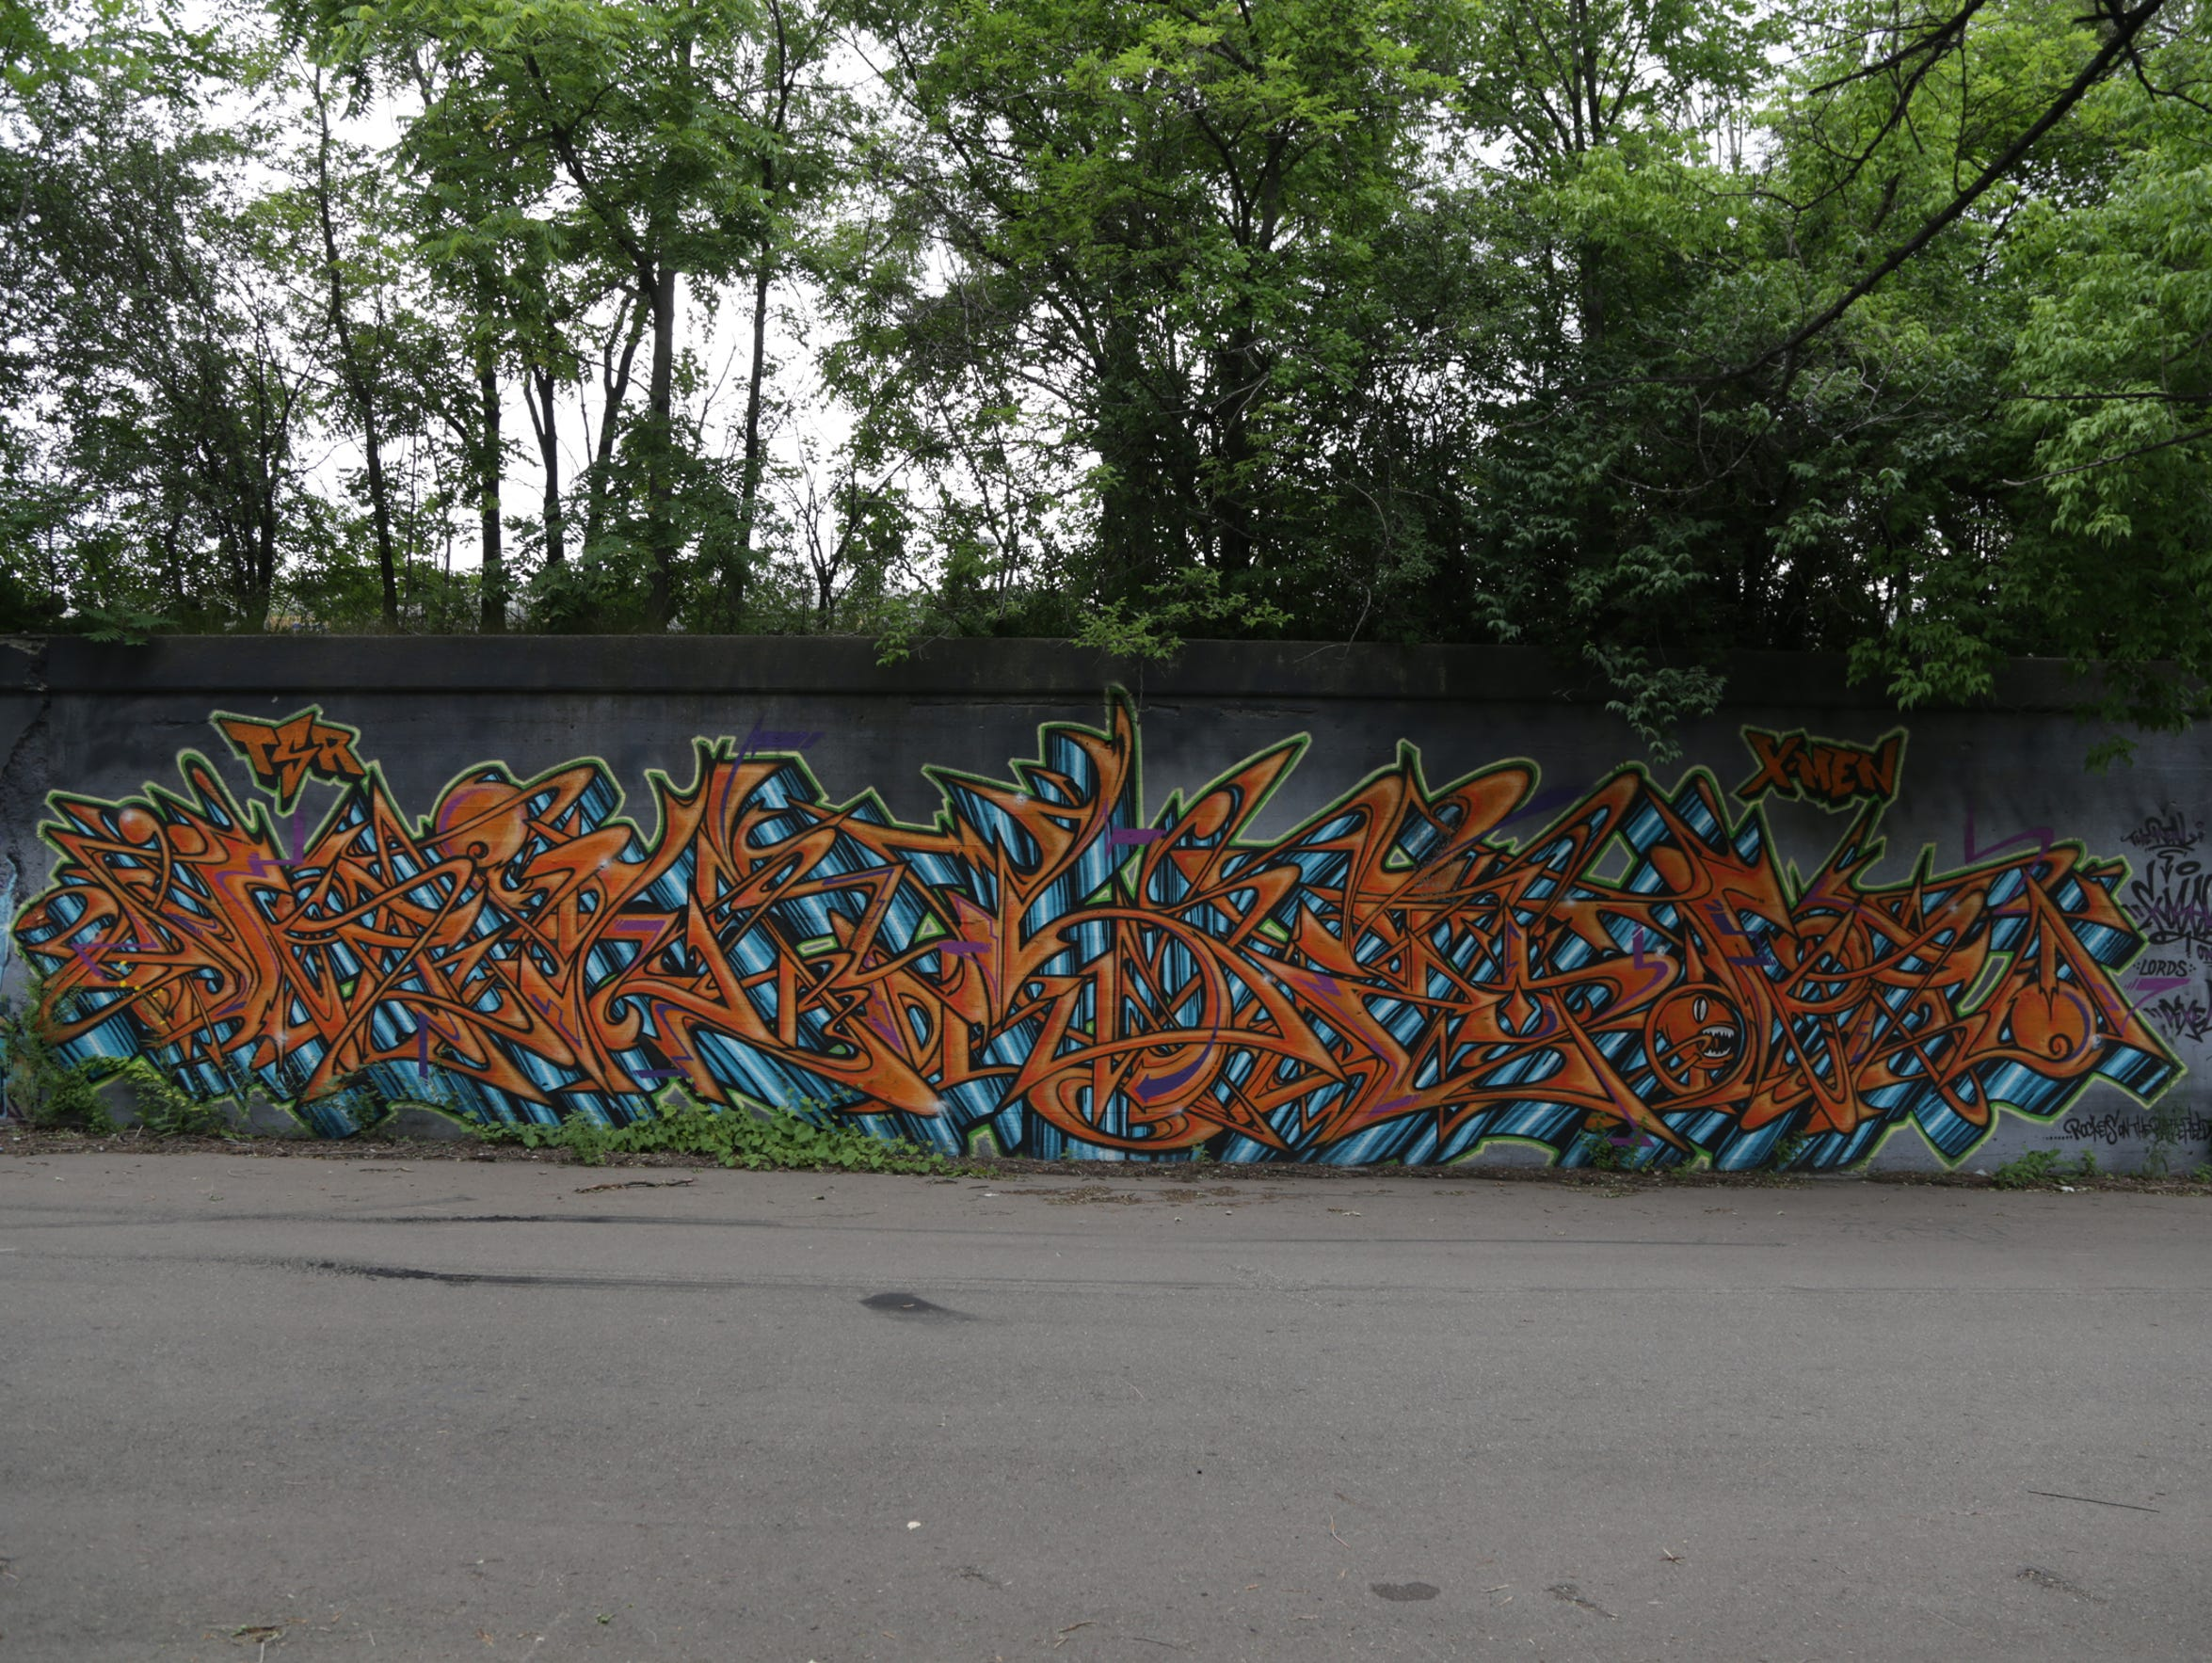 Graffiti wall training - A Mural By Kosek On Newark Street At 20th Street In